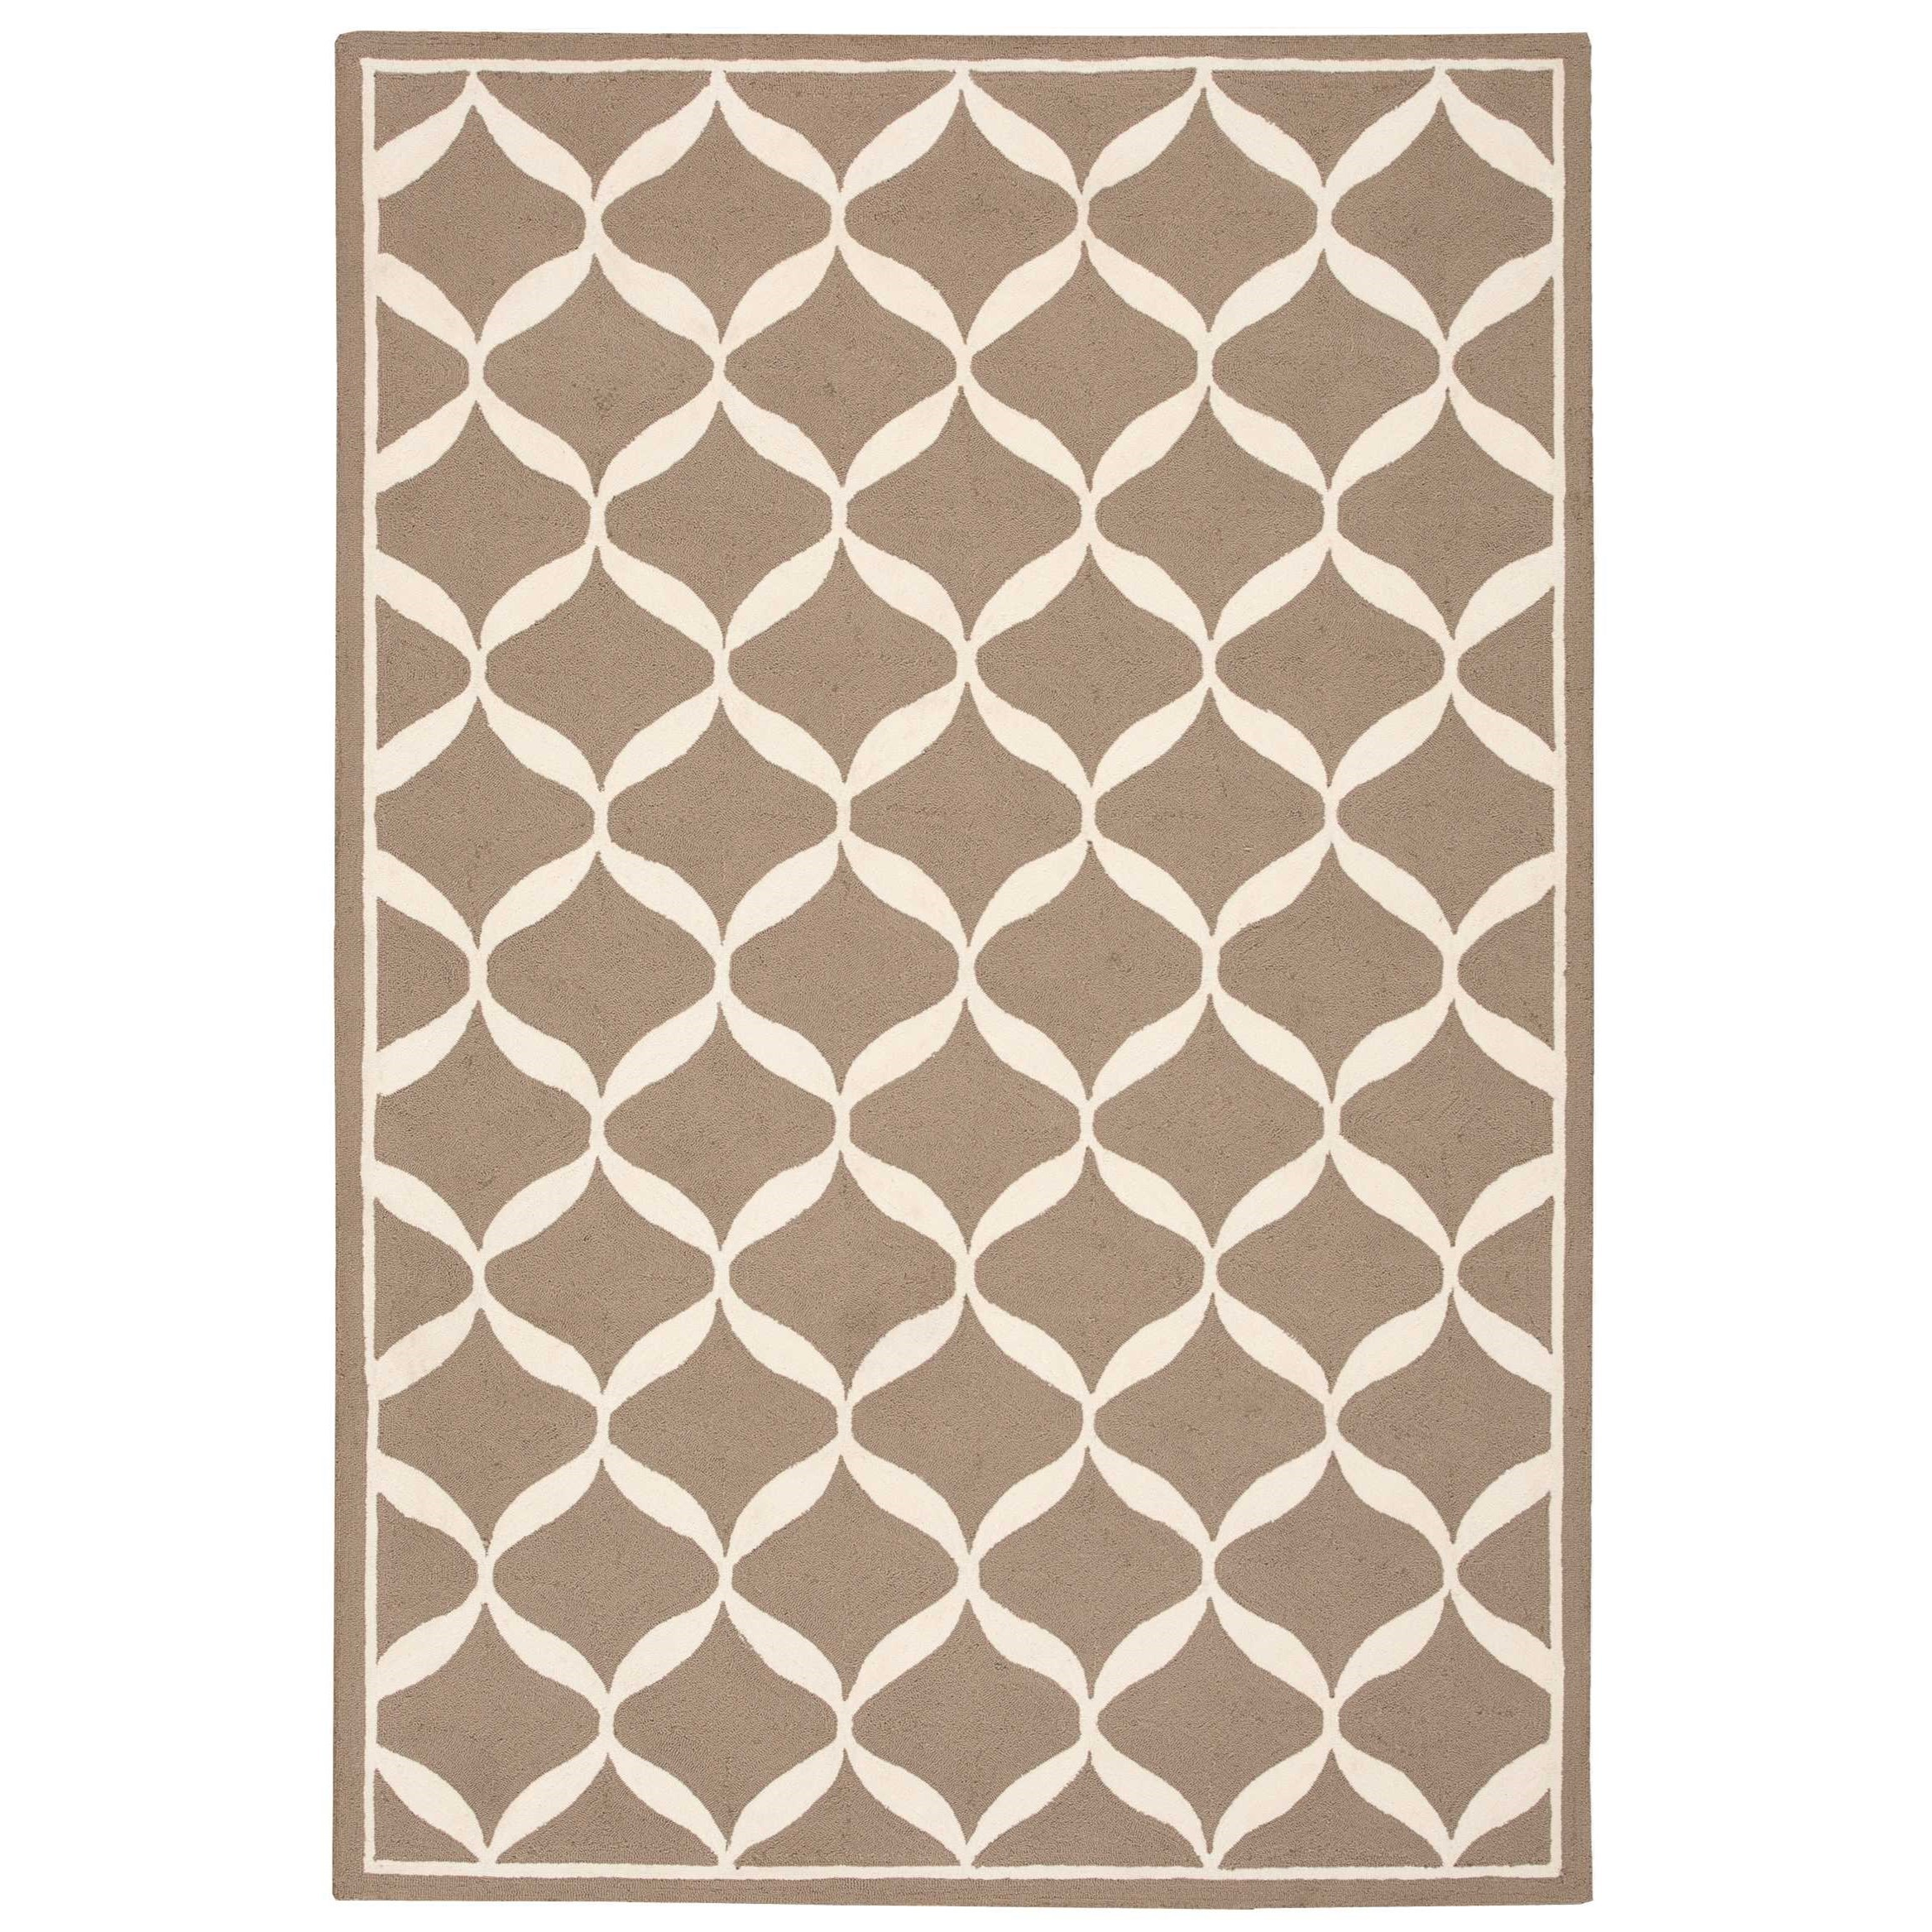 "Decor1 2'6"" X 3'10"" Taupe/White Rug by Nourison at Sprintz Furniture"